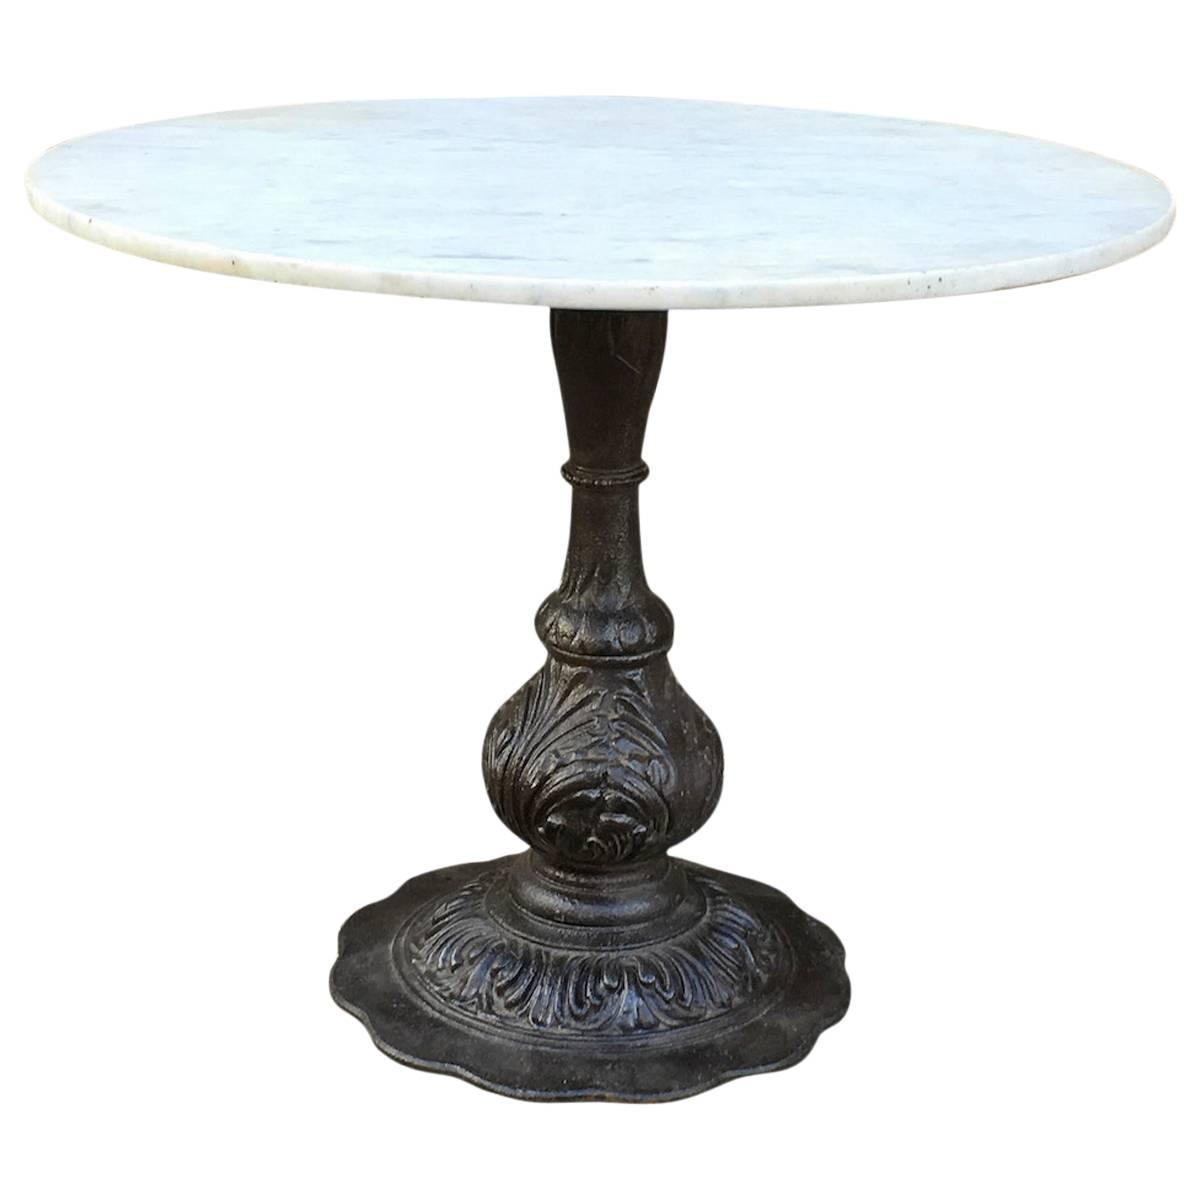 Marble dining table with ornate cast iron base at 1stdibs for Cast iron dining table